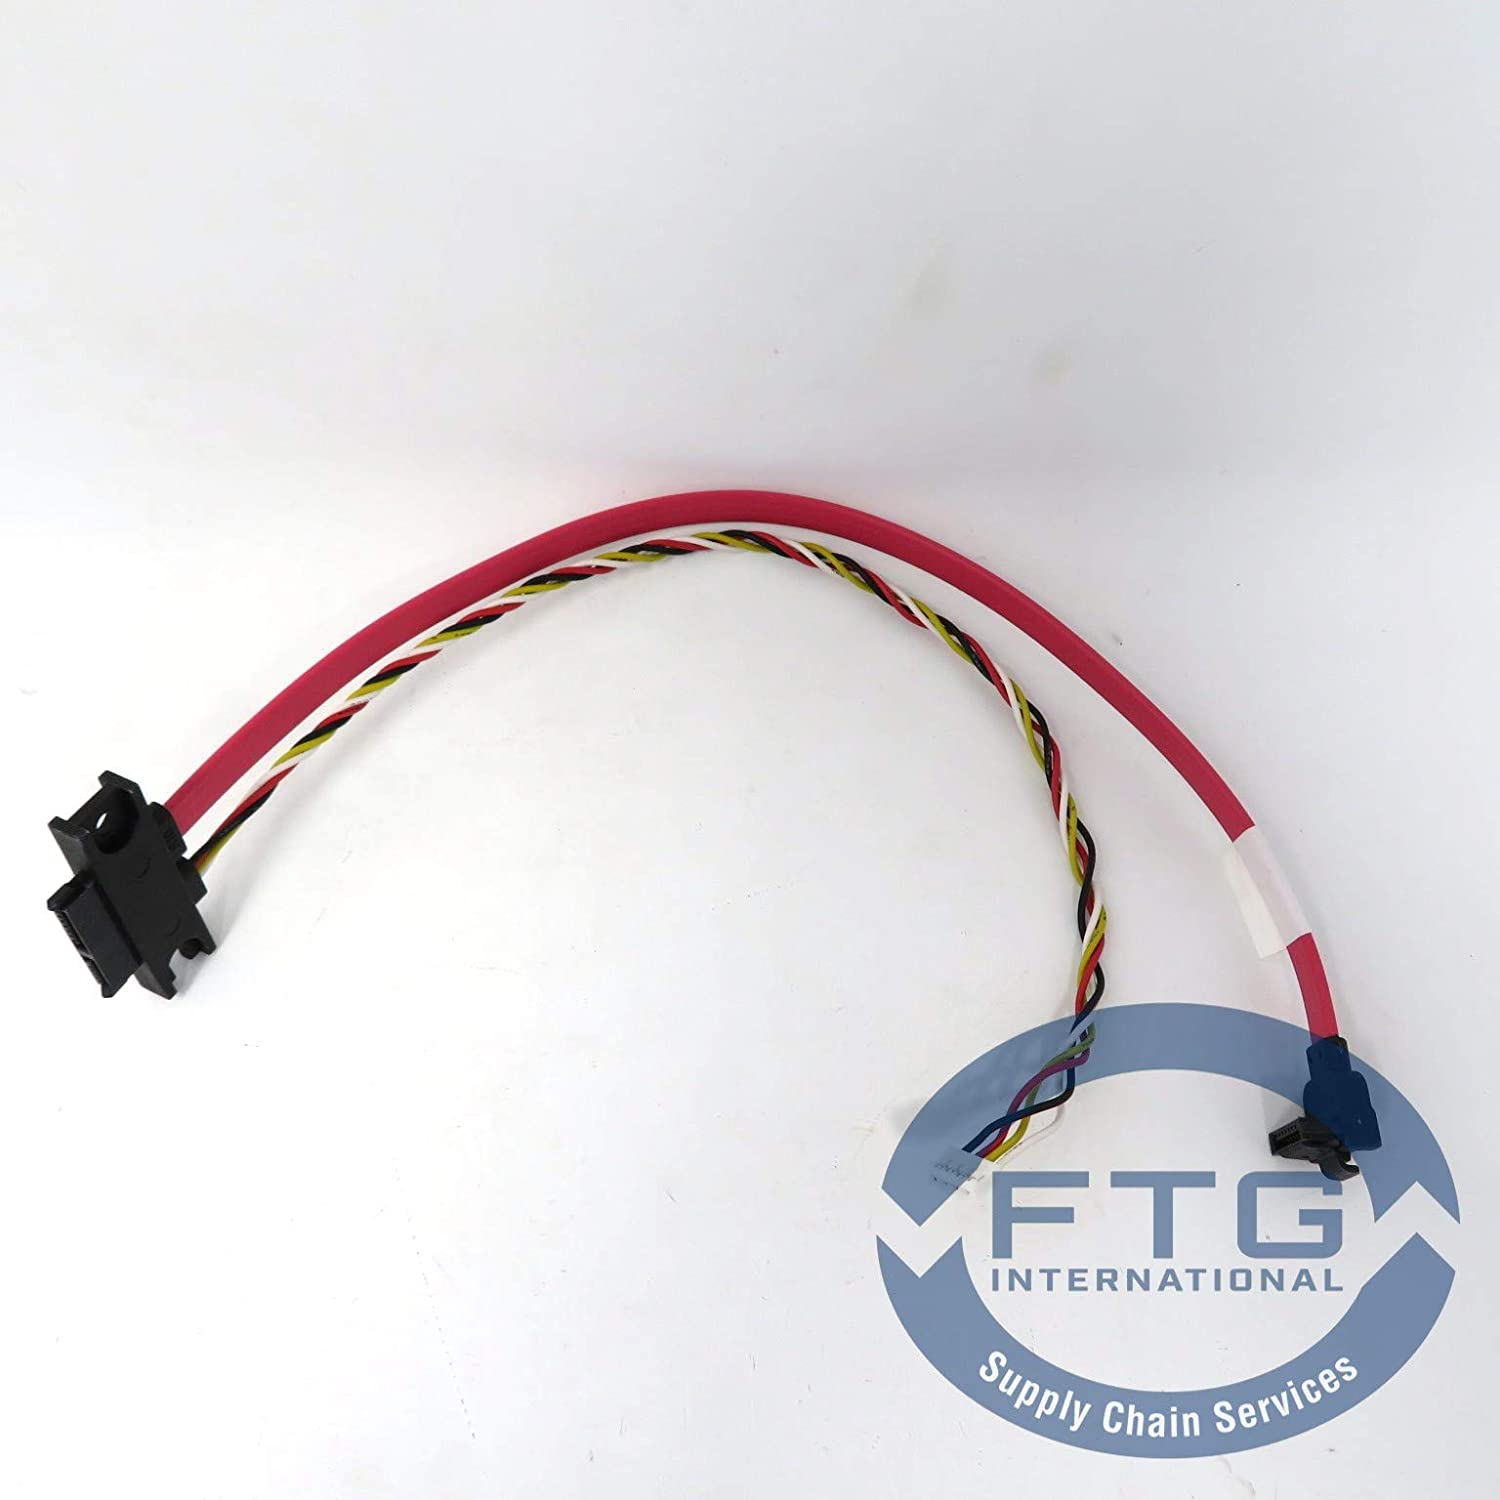 ODD SATA 280mm PWR 290mm Ambu-T 717528-001 Cable